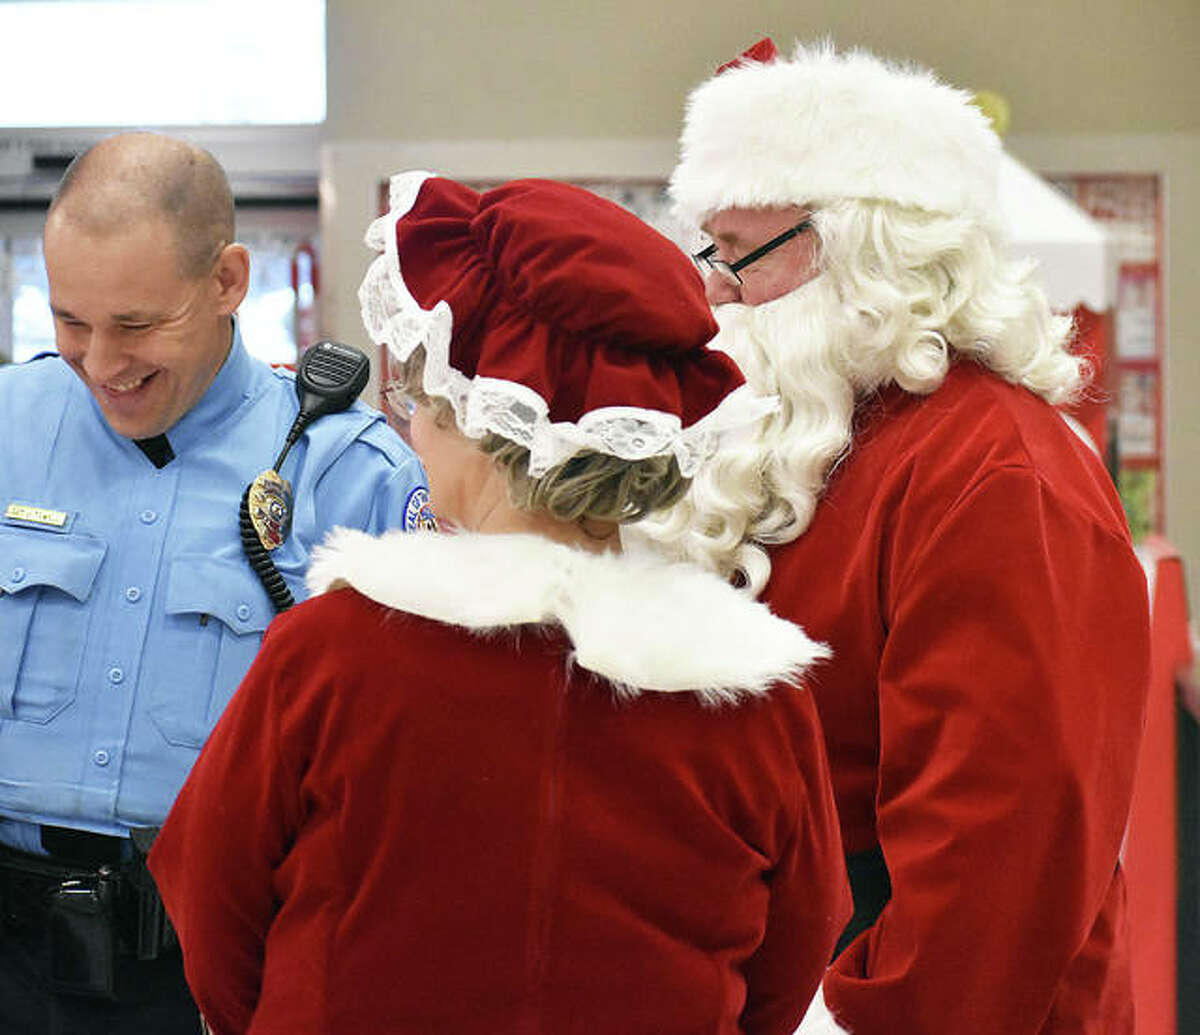 In this December 2018 file photo, an Edwardsville Police officer, left, jokes with Santa and Mrs. Claus at Target during the annual